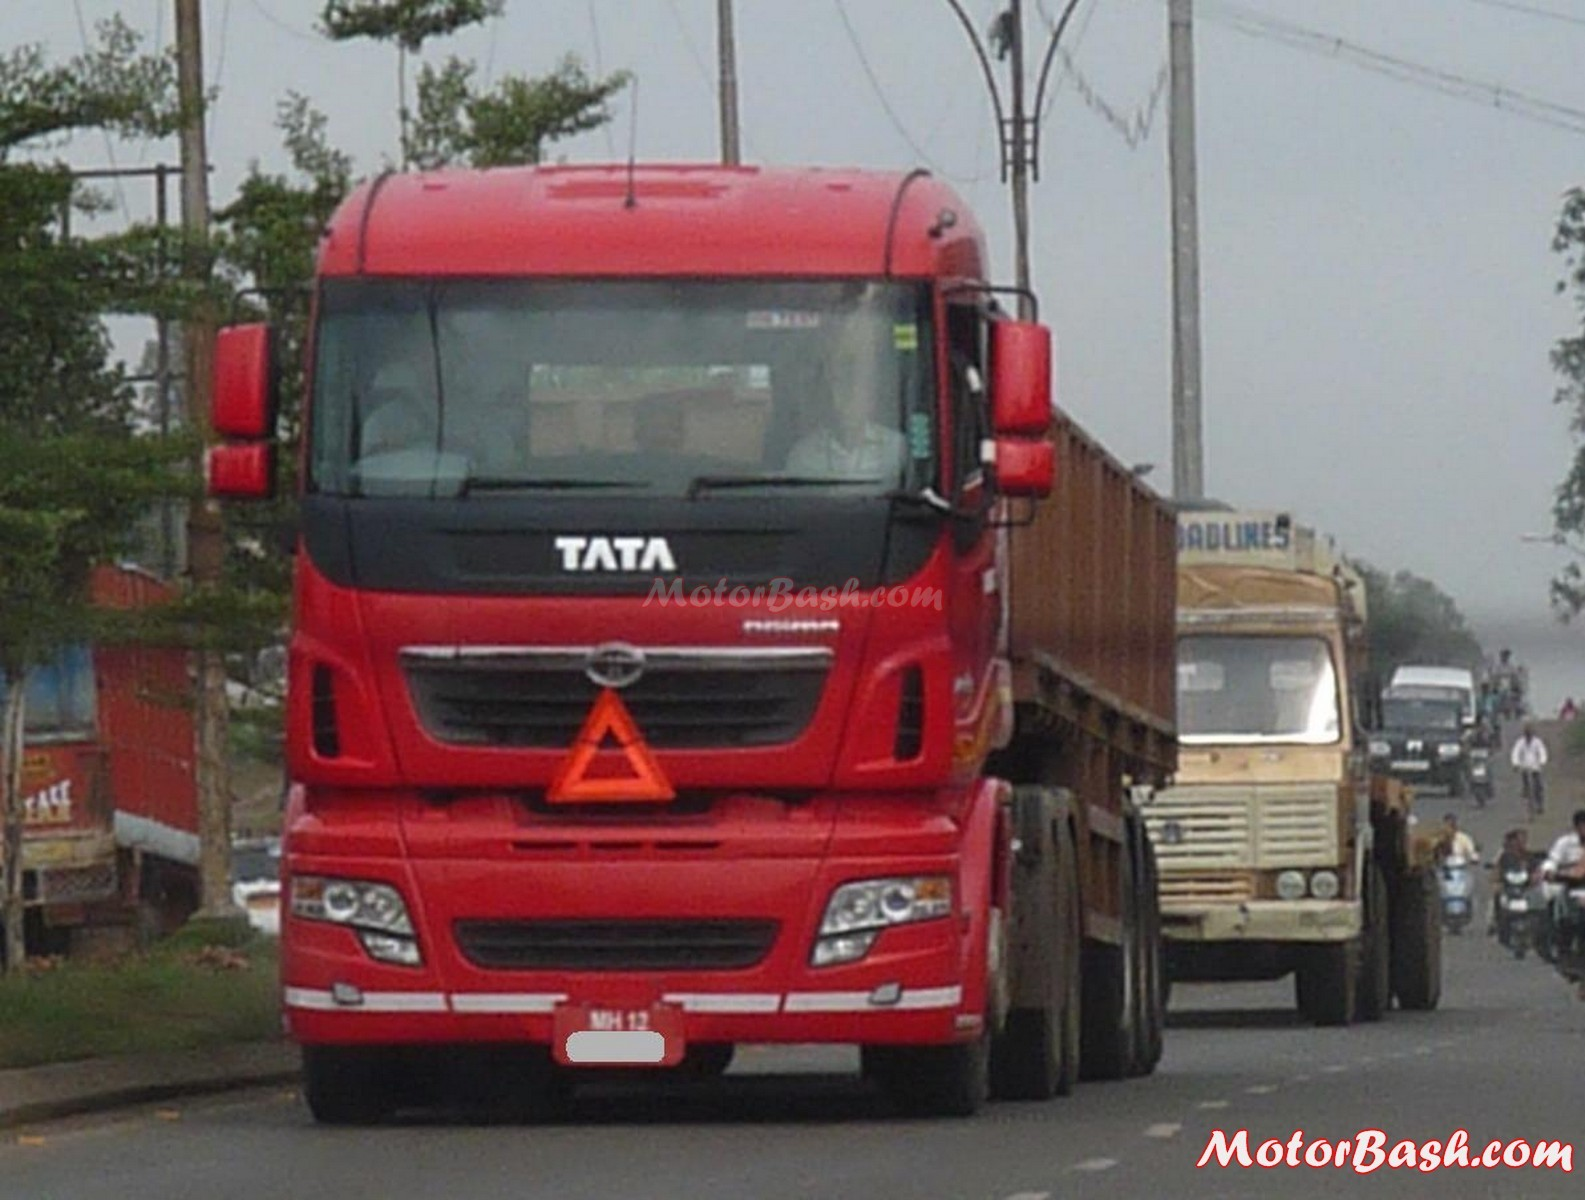 TATA ALERT: Tata Motors Launches Highway Assistance Program for Heavy and Medium Commercial Vehicles